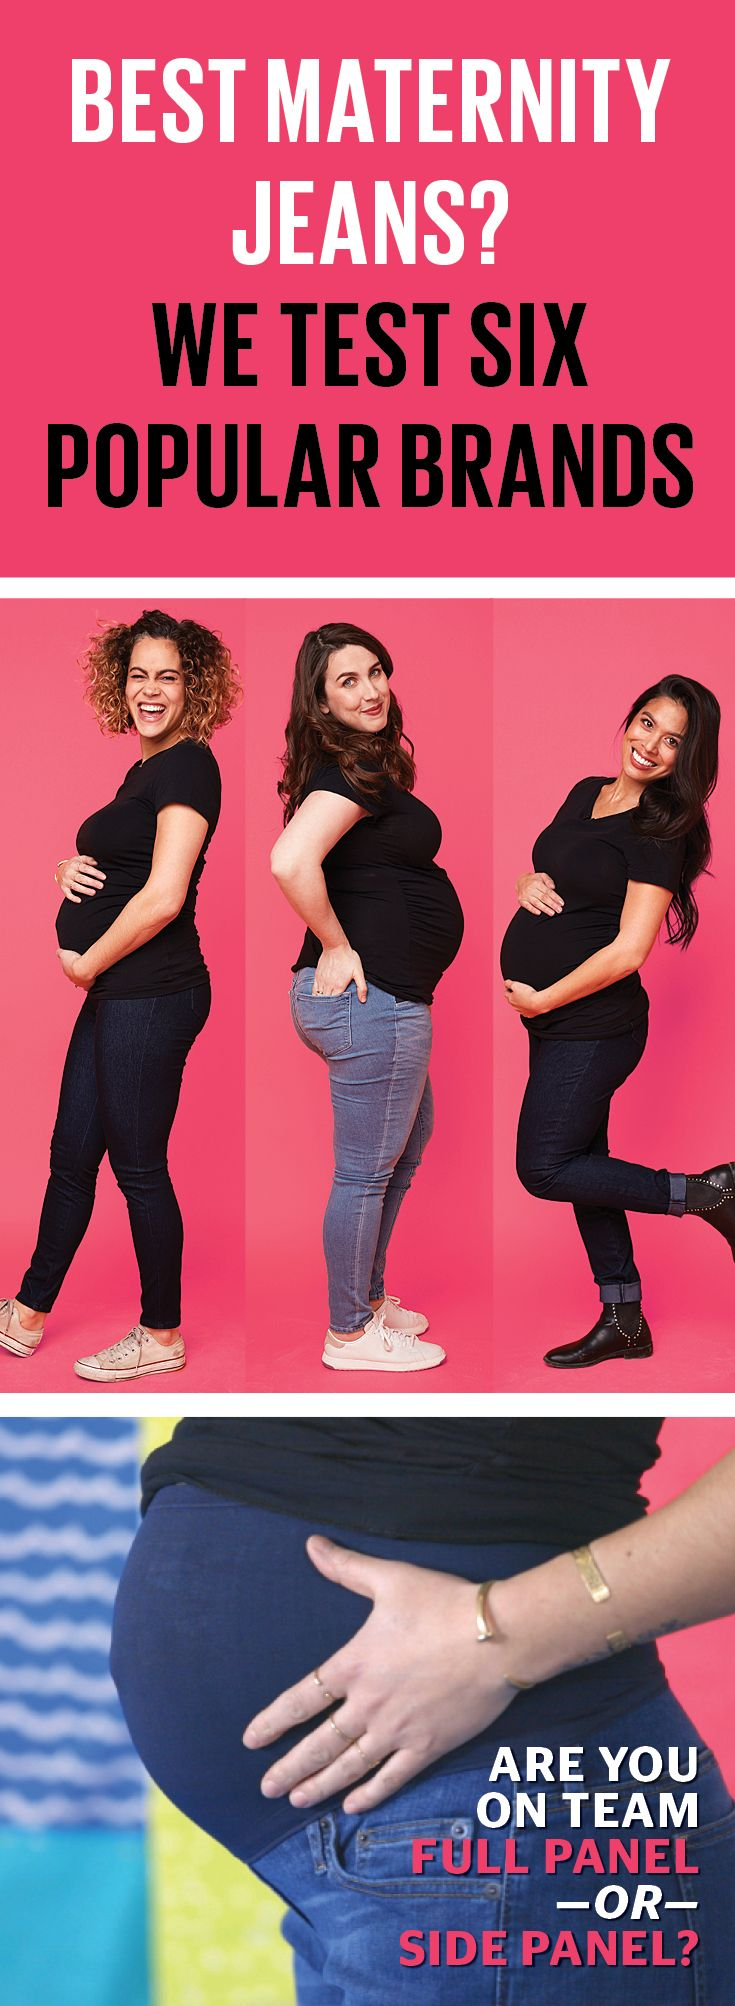 We gathered six popular brands of maternity jeans and tested them